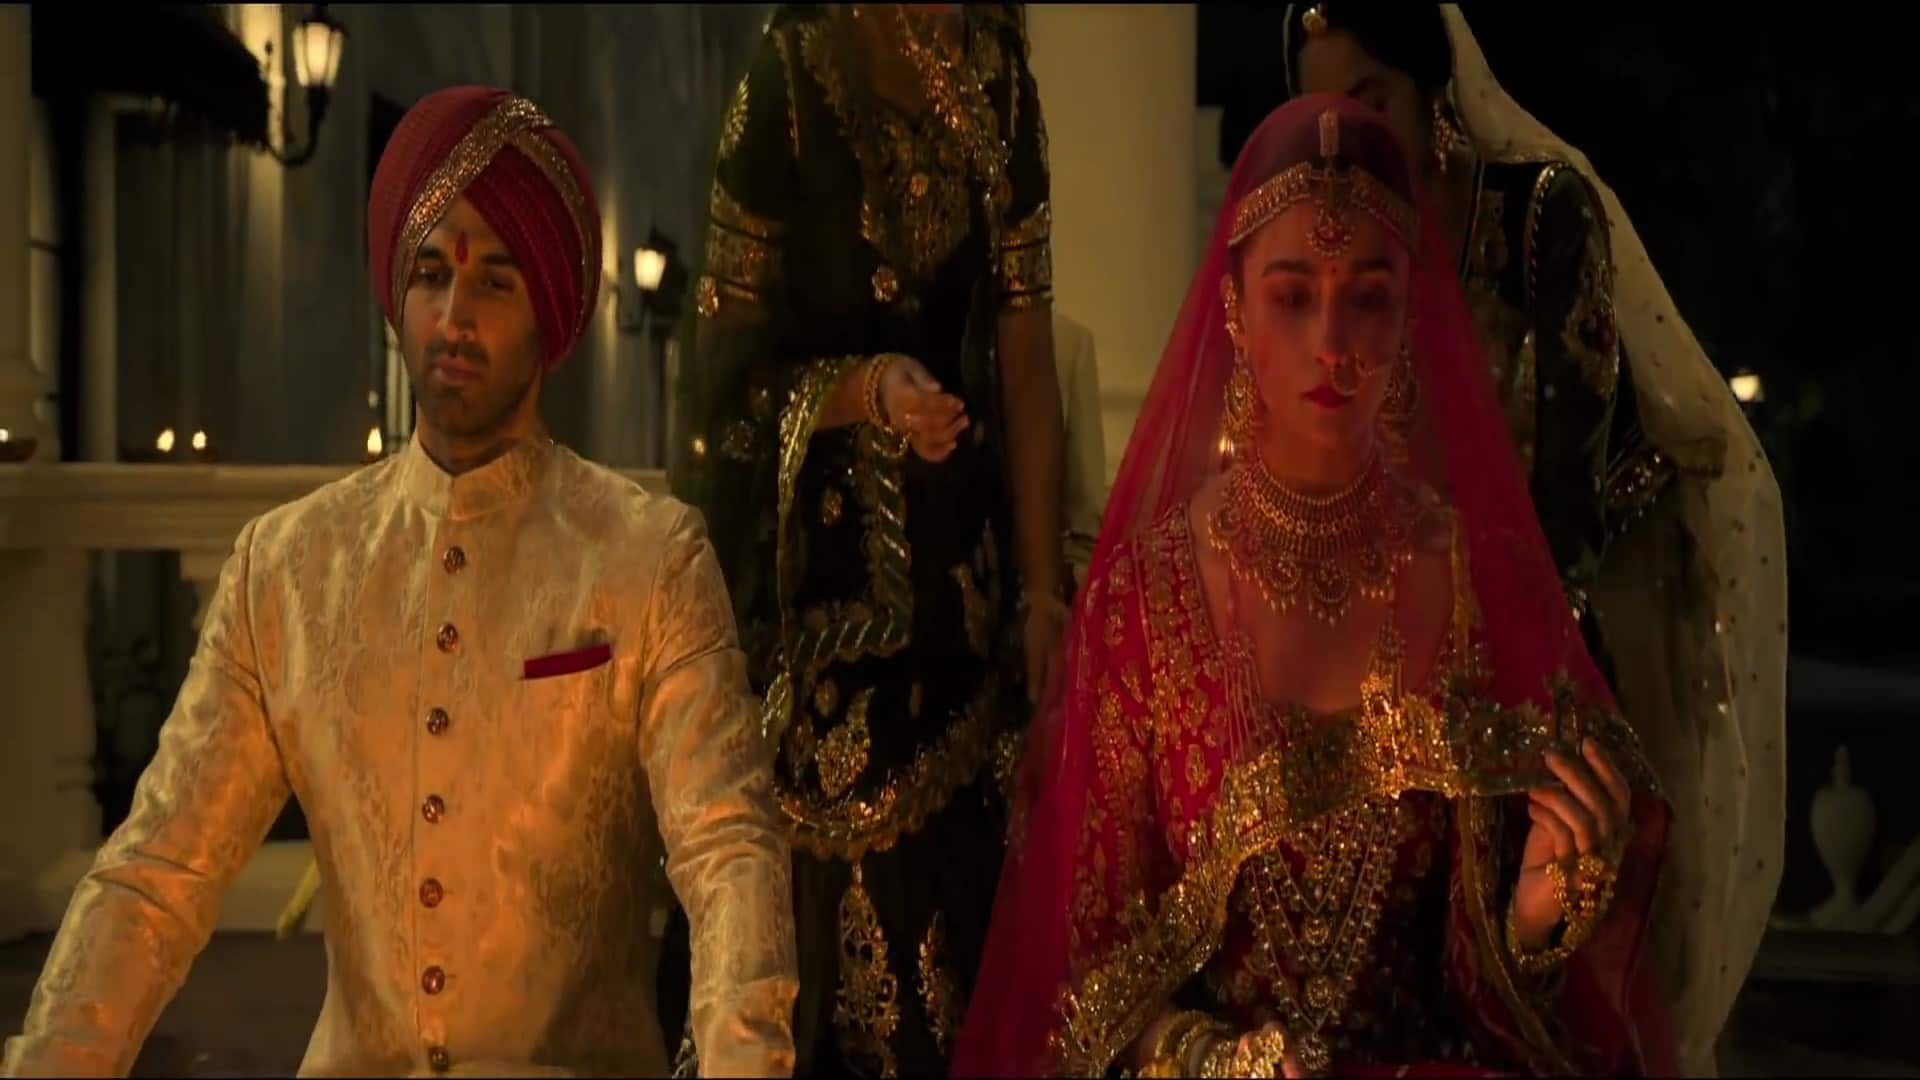 Aditya Roy Kapoor Is So Good In Kalank That You Might Want To Watch Film Just For Him